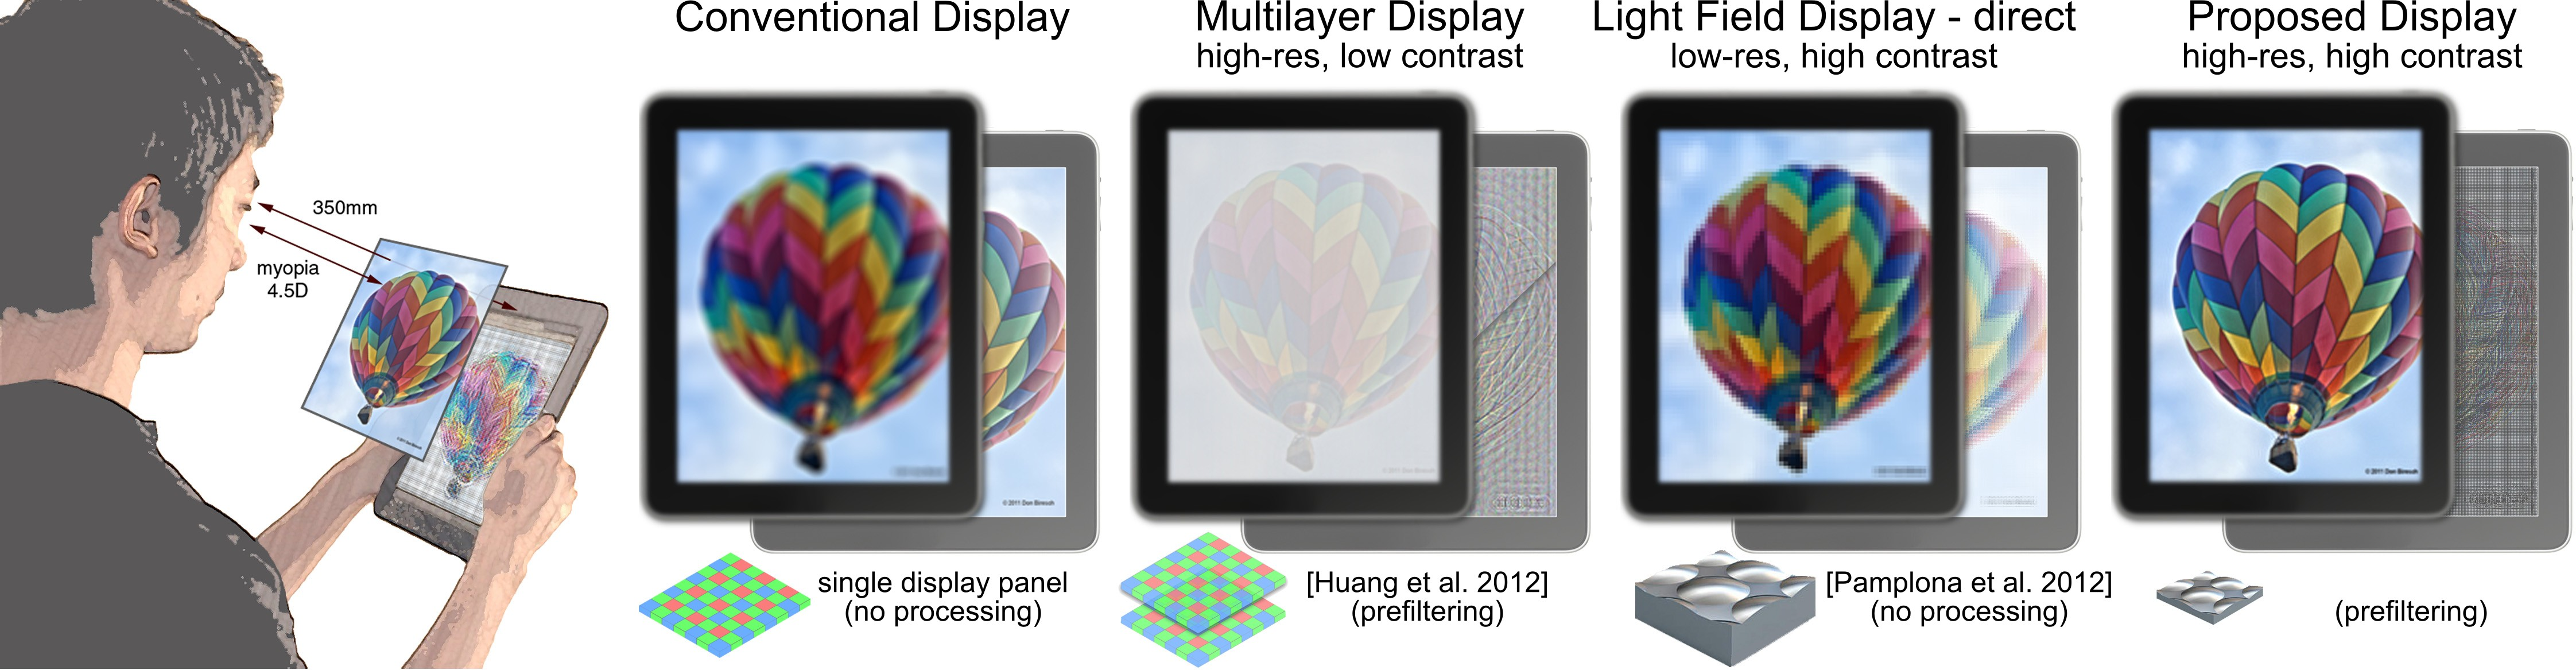 Vision correction with computational displays. On a conventional screen, people with optical aberrations see a blurred image (center left). Current approaches to aberration-correcting display use multilayer prefiltering (center) or light field displays (center right). While the former technology enhances perceived image sharpness, contrast is severely reduced. Existing light field-based solutions offer high contrast but require a very high angular sampling density, which significantly reduces image resolution. In this paper, we explore the convergence of light field display optics and computational prefiltering (right), which achieves high image resolution and contrast simultaneously.